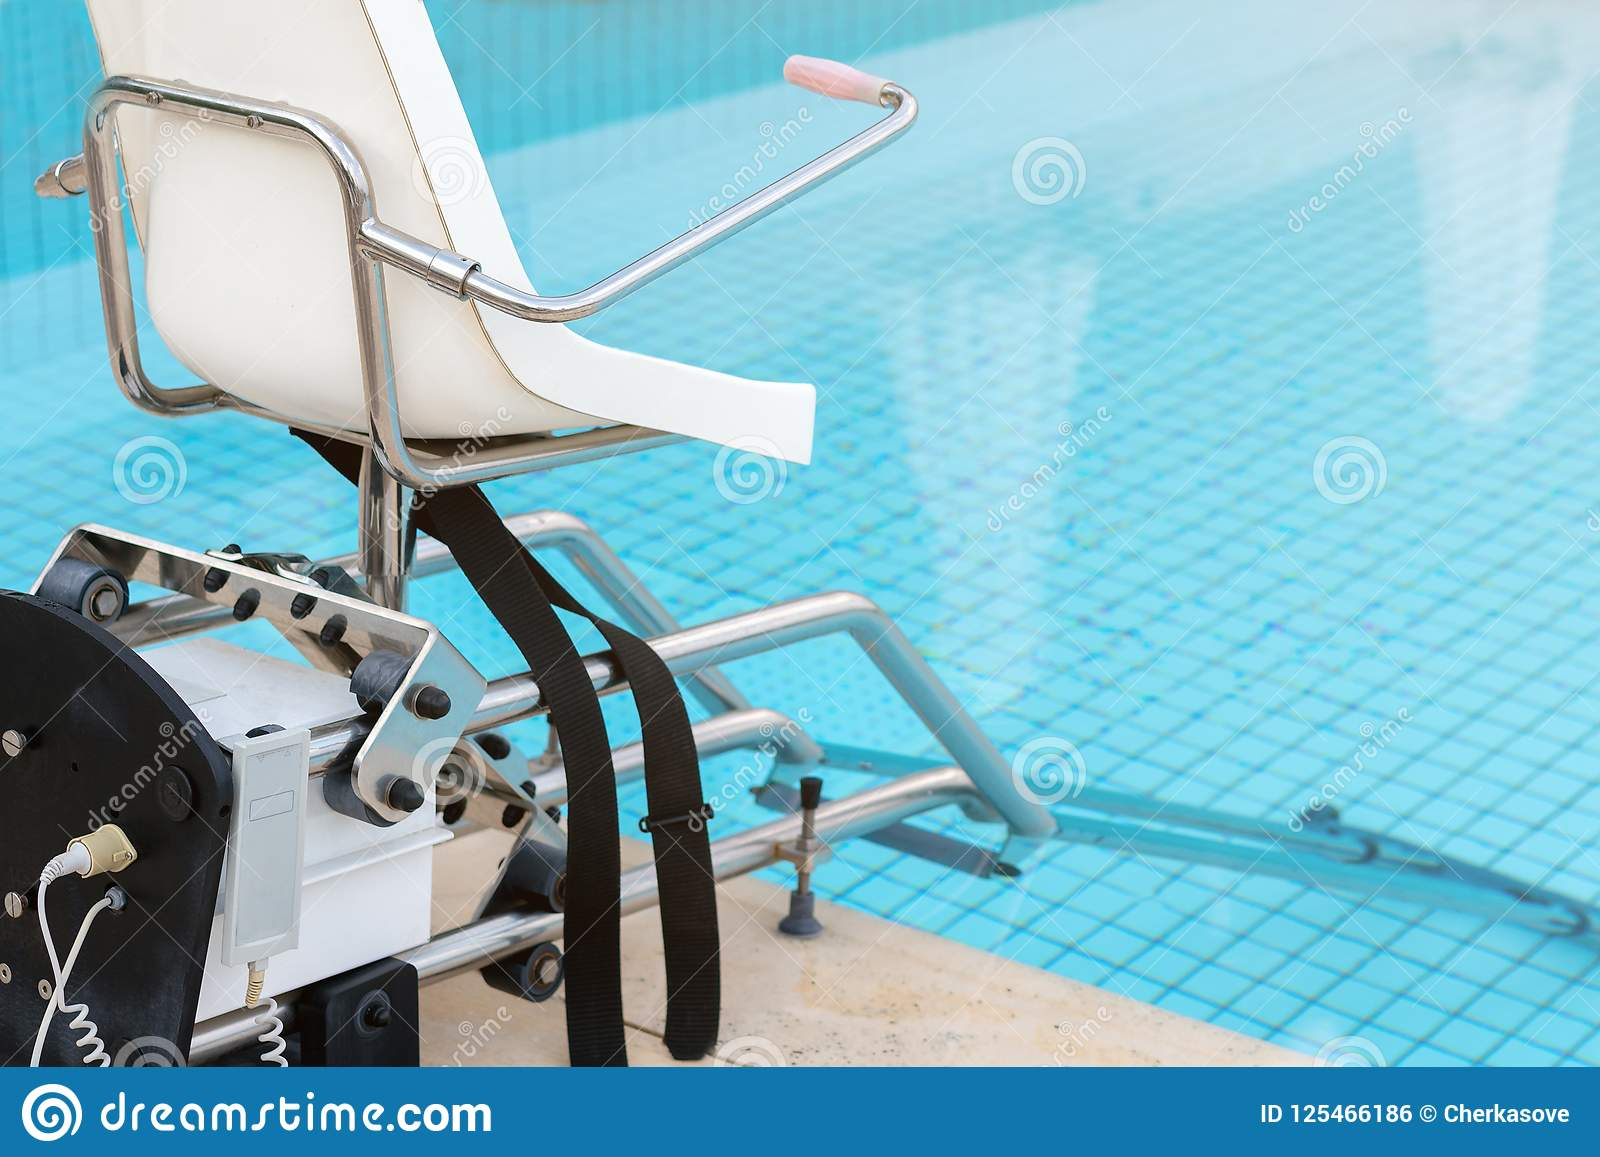 Swimming Pool Lifts For Disabled People Access To The Pool Stock ...